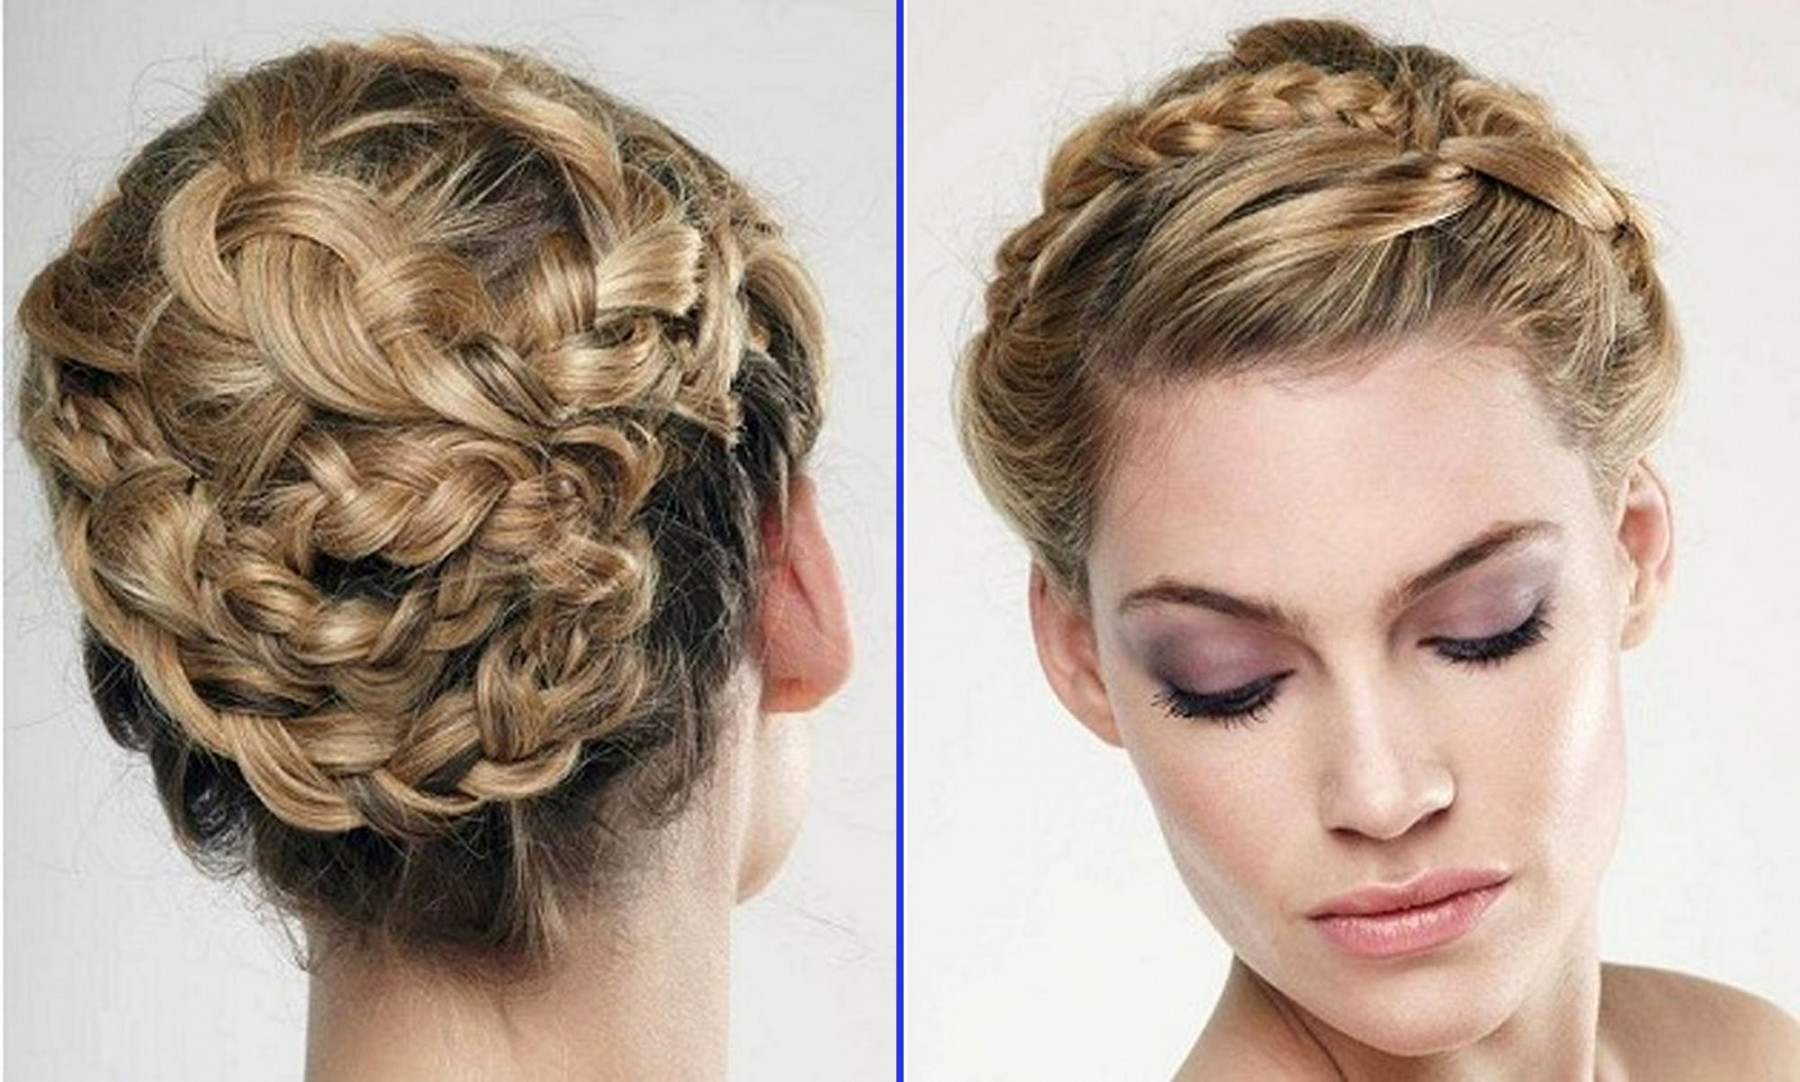 Cute Updo Hairstyles Short Hair Marvelous Short Wedding Hairstyles Intended For Cute Updo Hairstyles For Short Hair (View 8 of 15)